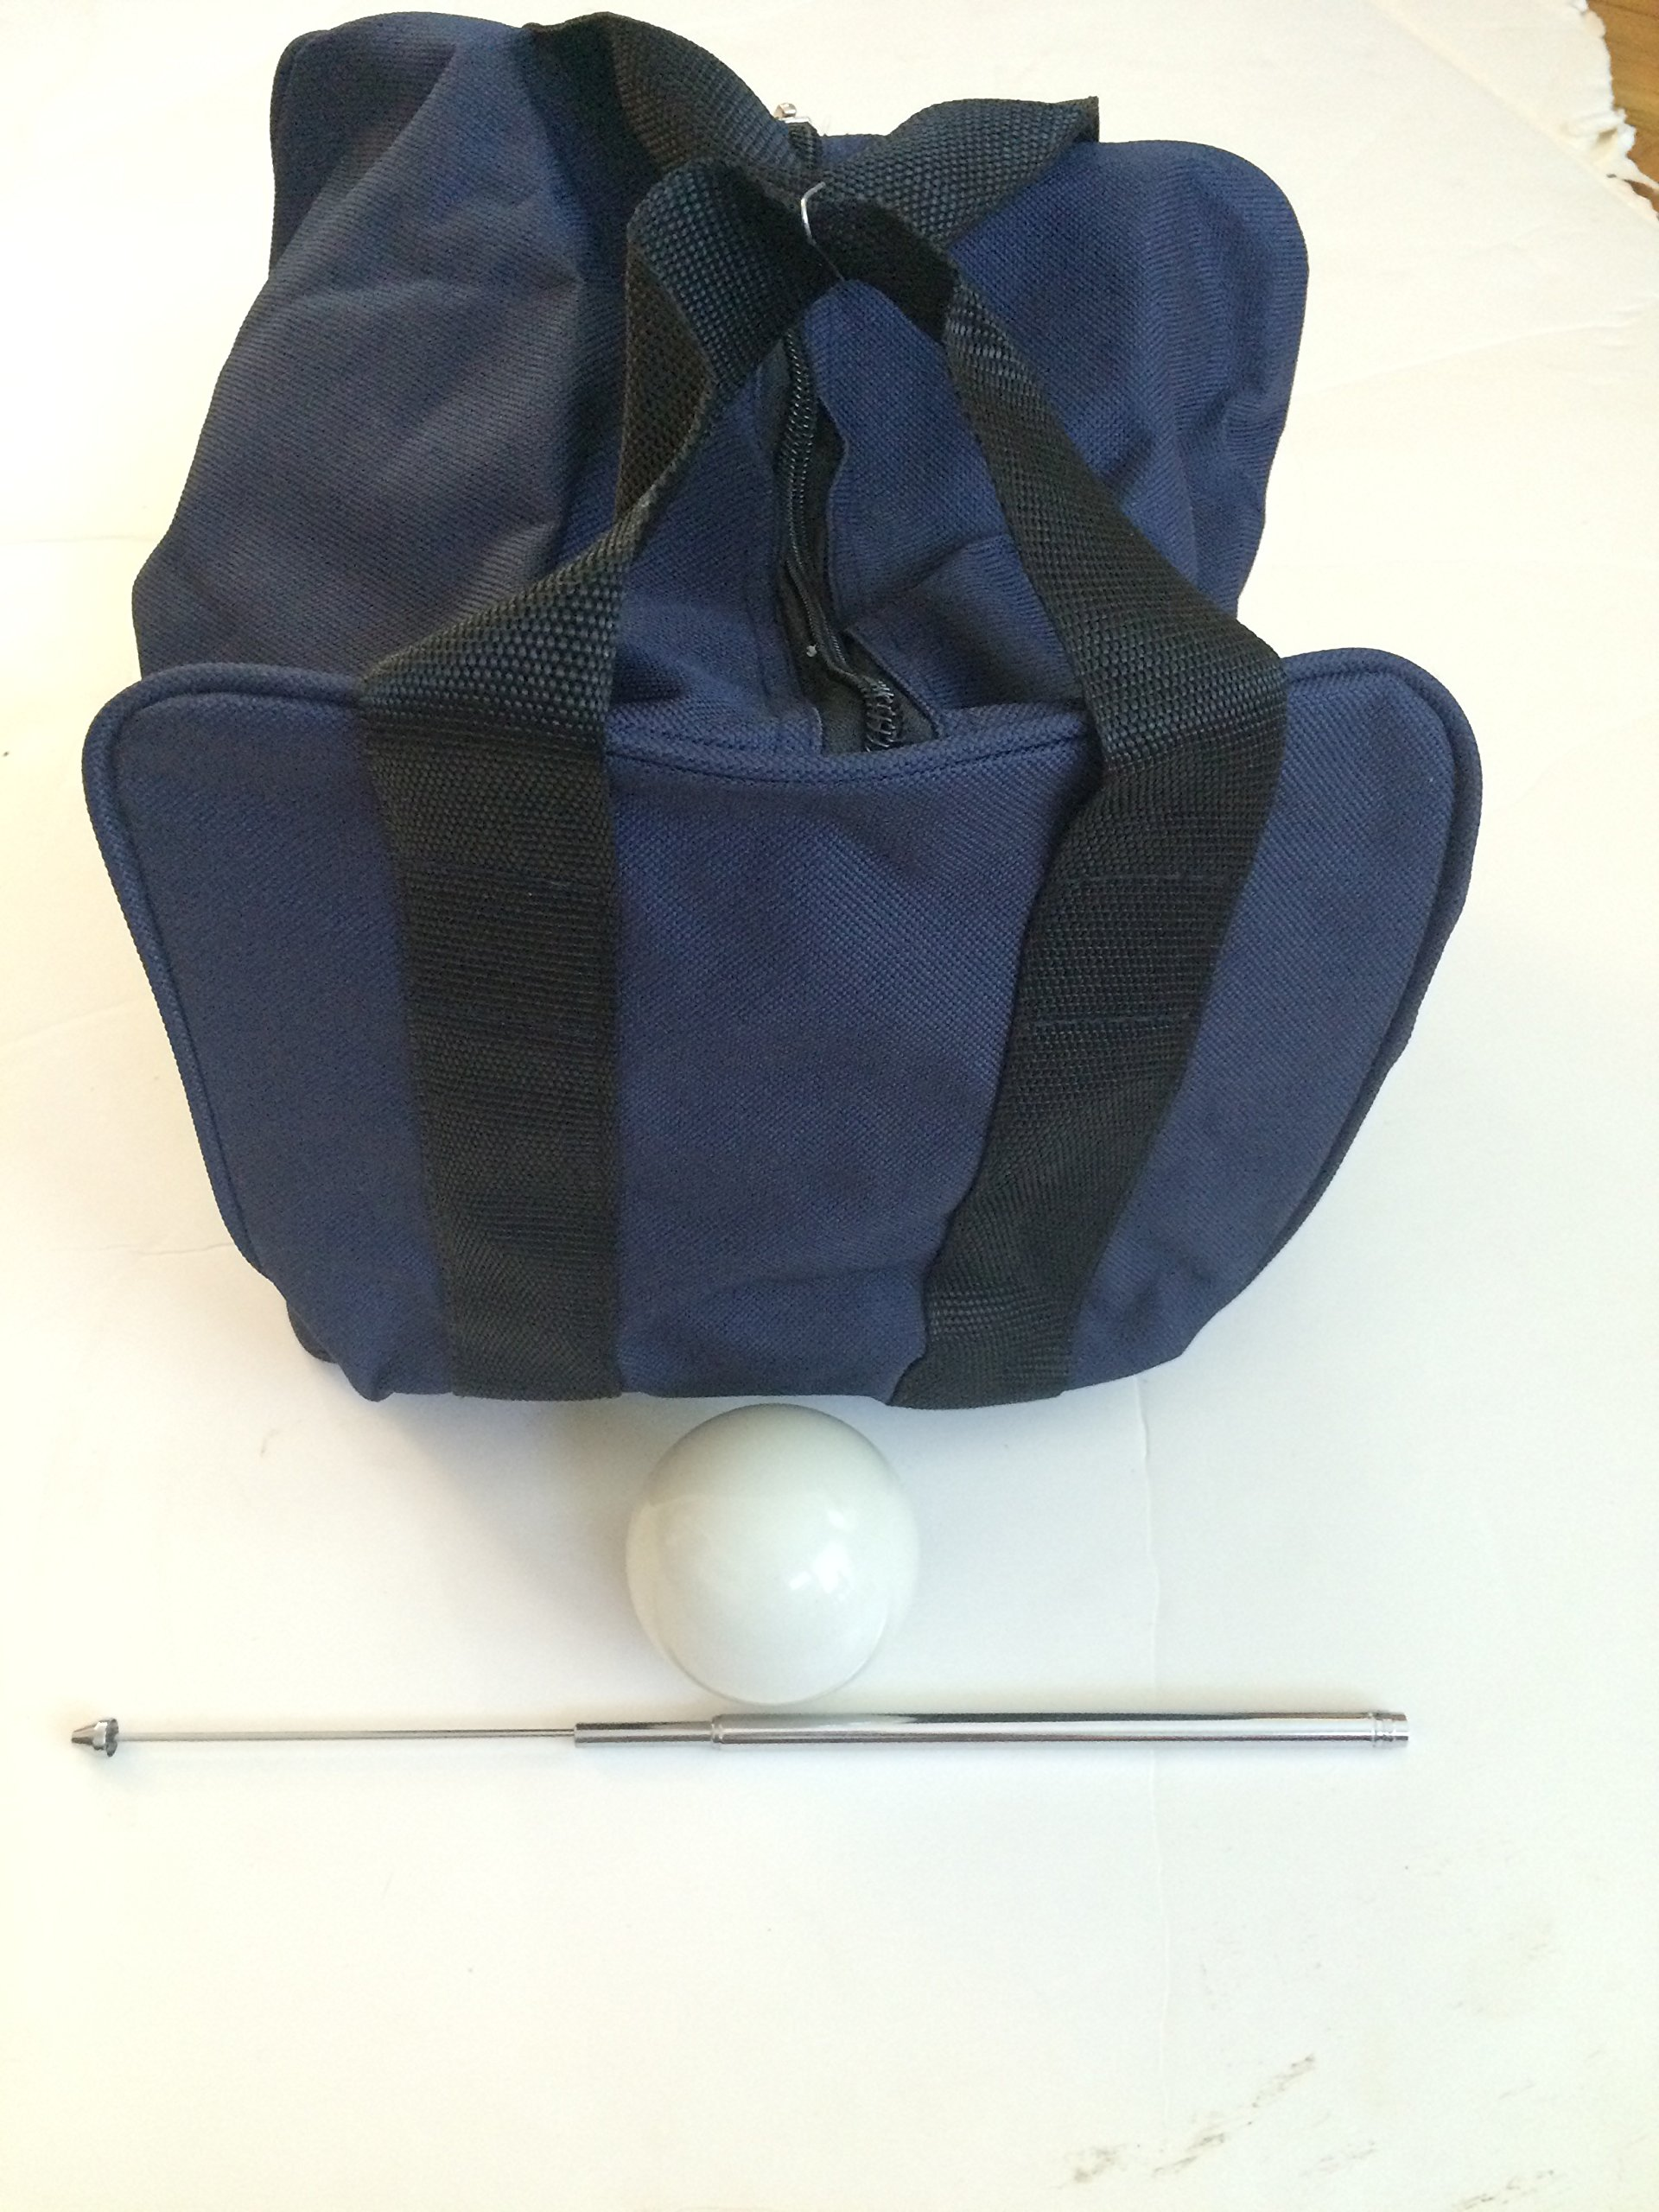 Unique Bocce Accessories Package - Extra Heavy Duty Nylon Bocce Bag (Blue with Black Handles), White pallina, Extendable Measuring Device